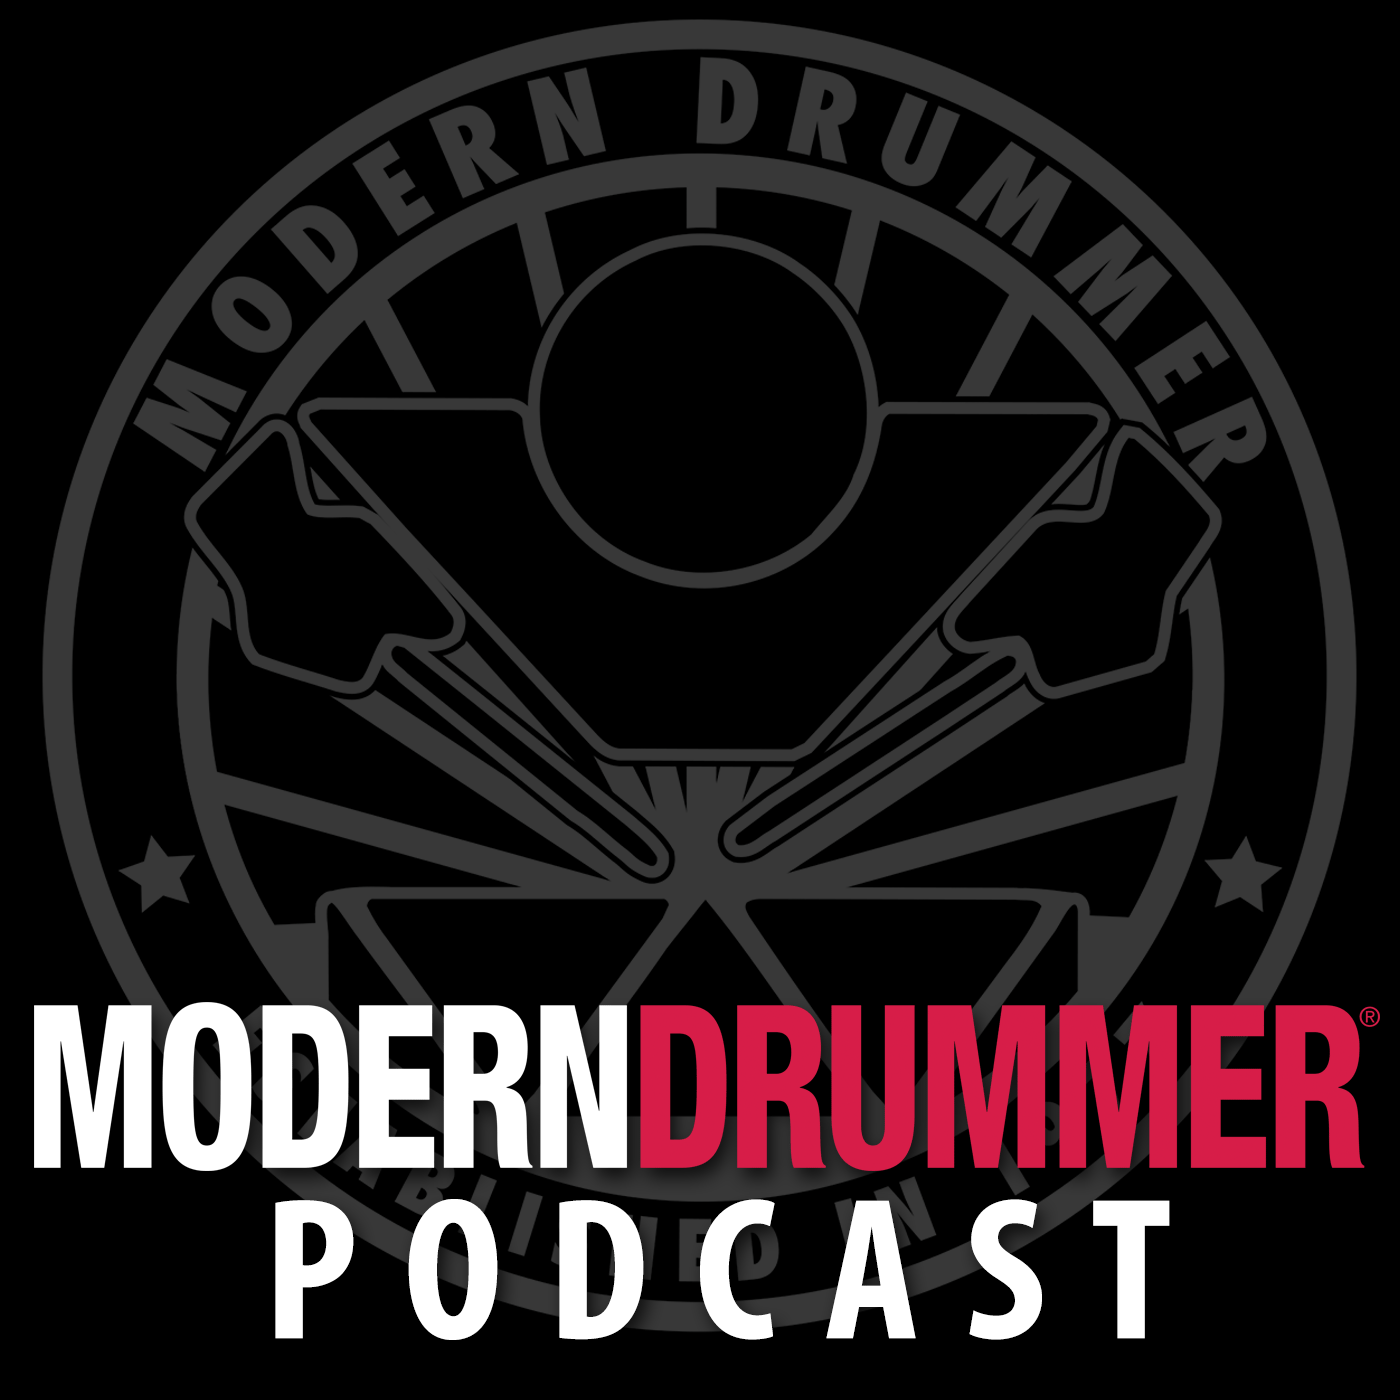 Modern Drummer Podcasts